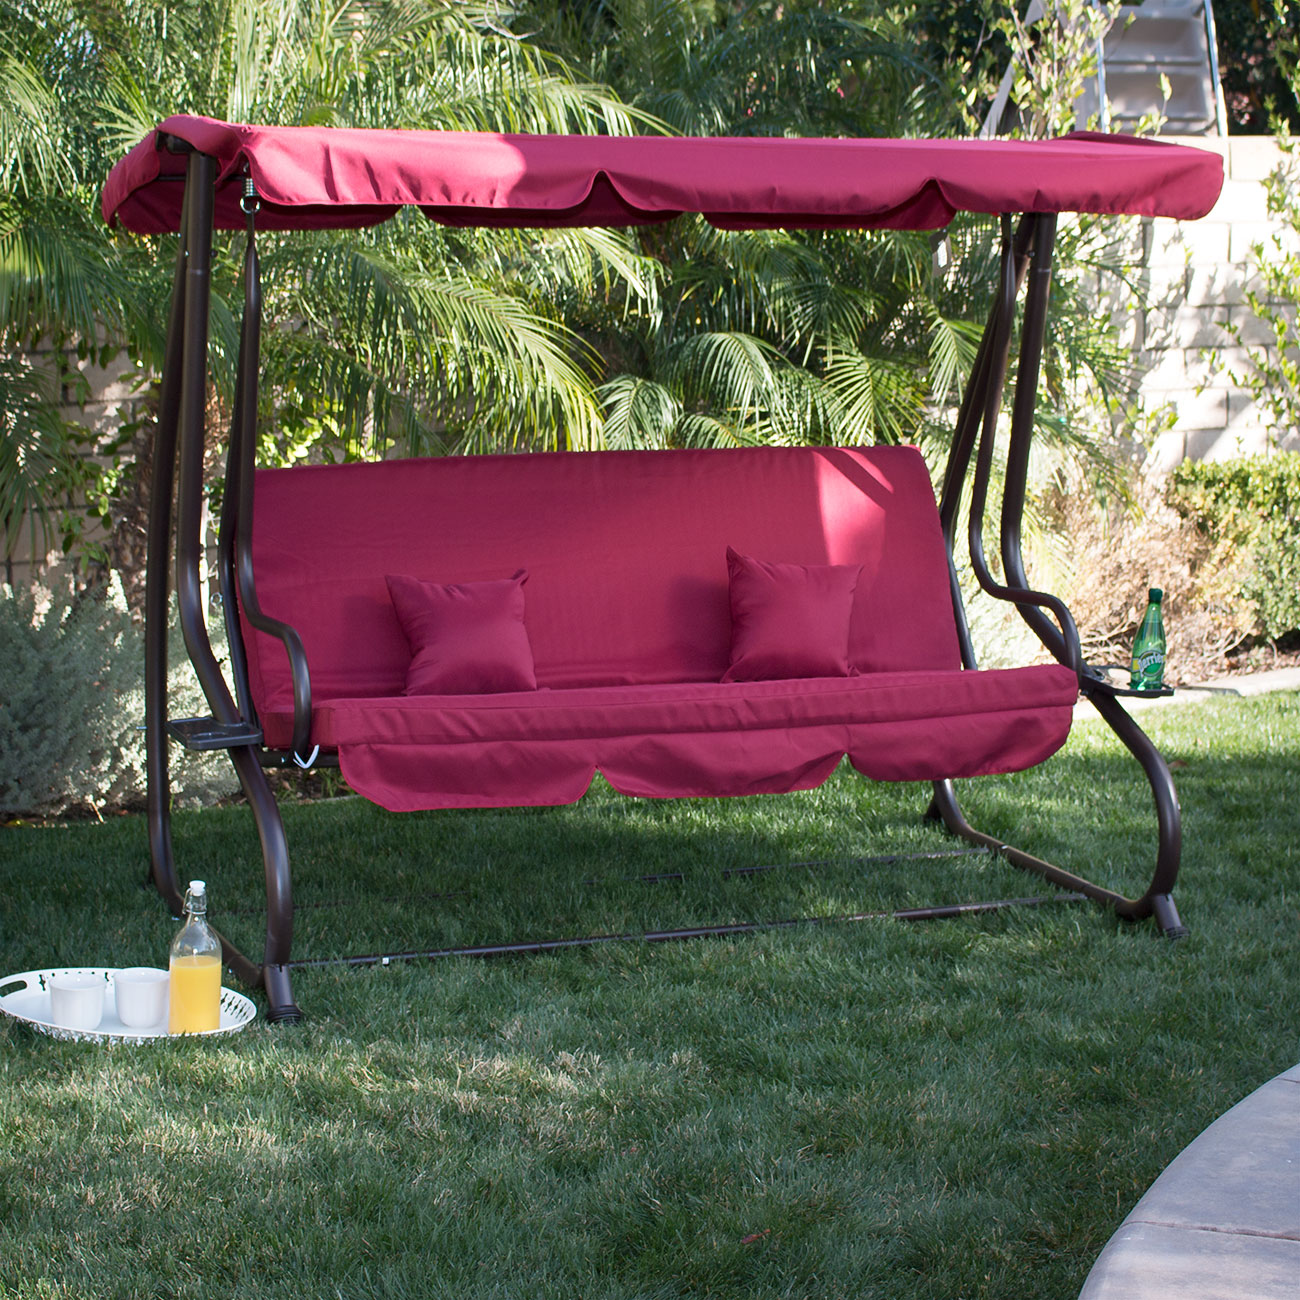 3 person outdoor swing w canopy seat patio hammock furniture bench yard loveseat ebay - Garden furniture swing seats ...